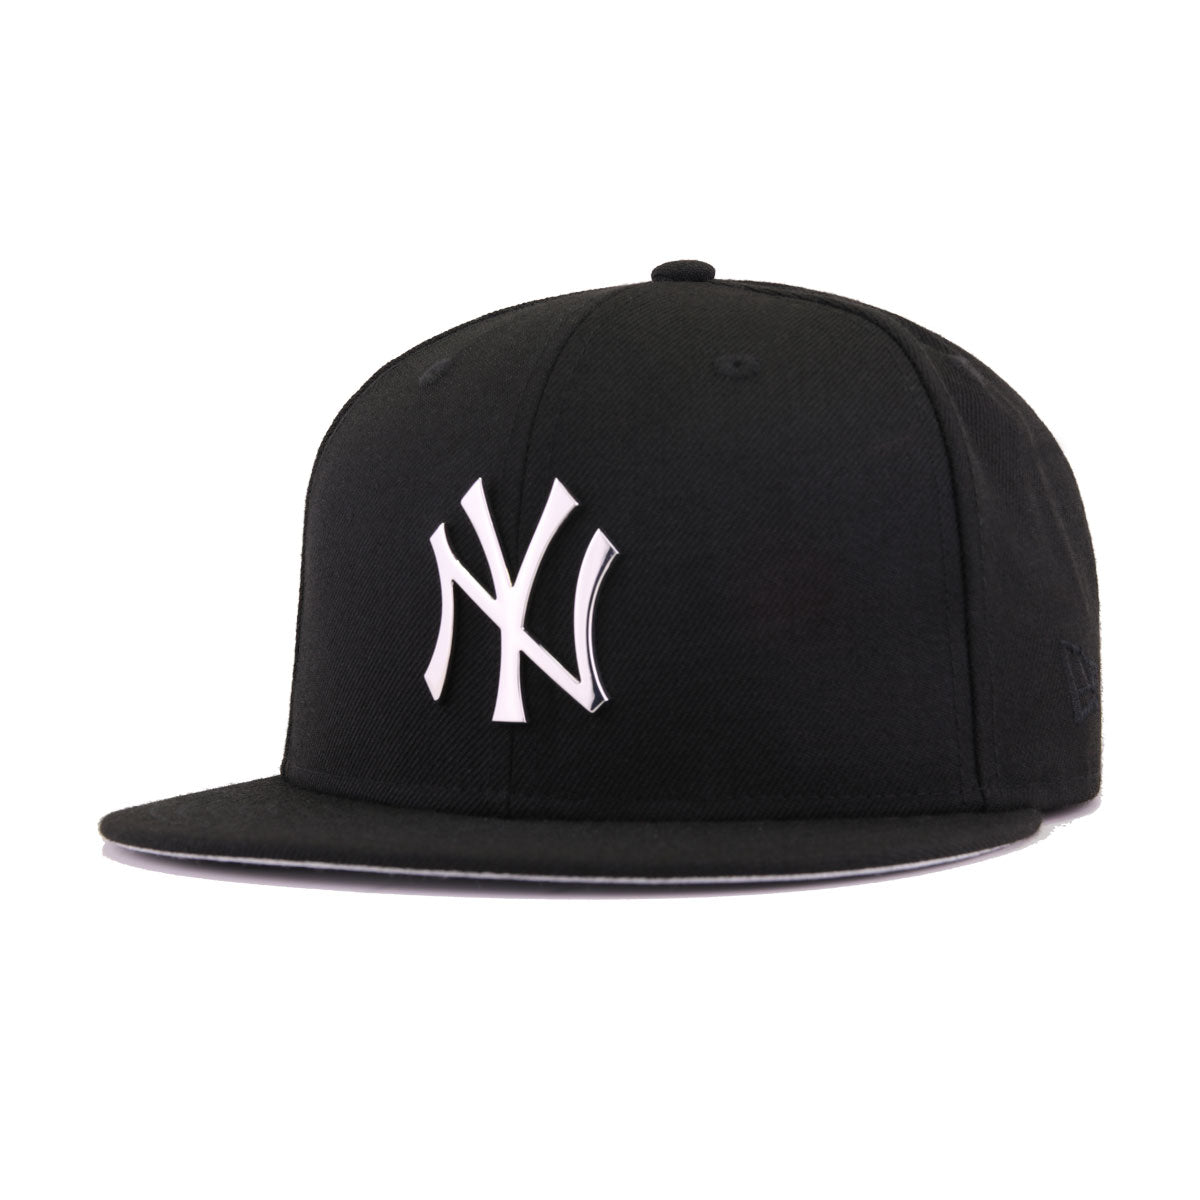 New York Yankees Black Silver Metal Badge 100th Anniversary New Era 9Fifty Snapback